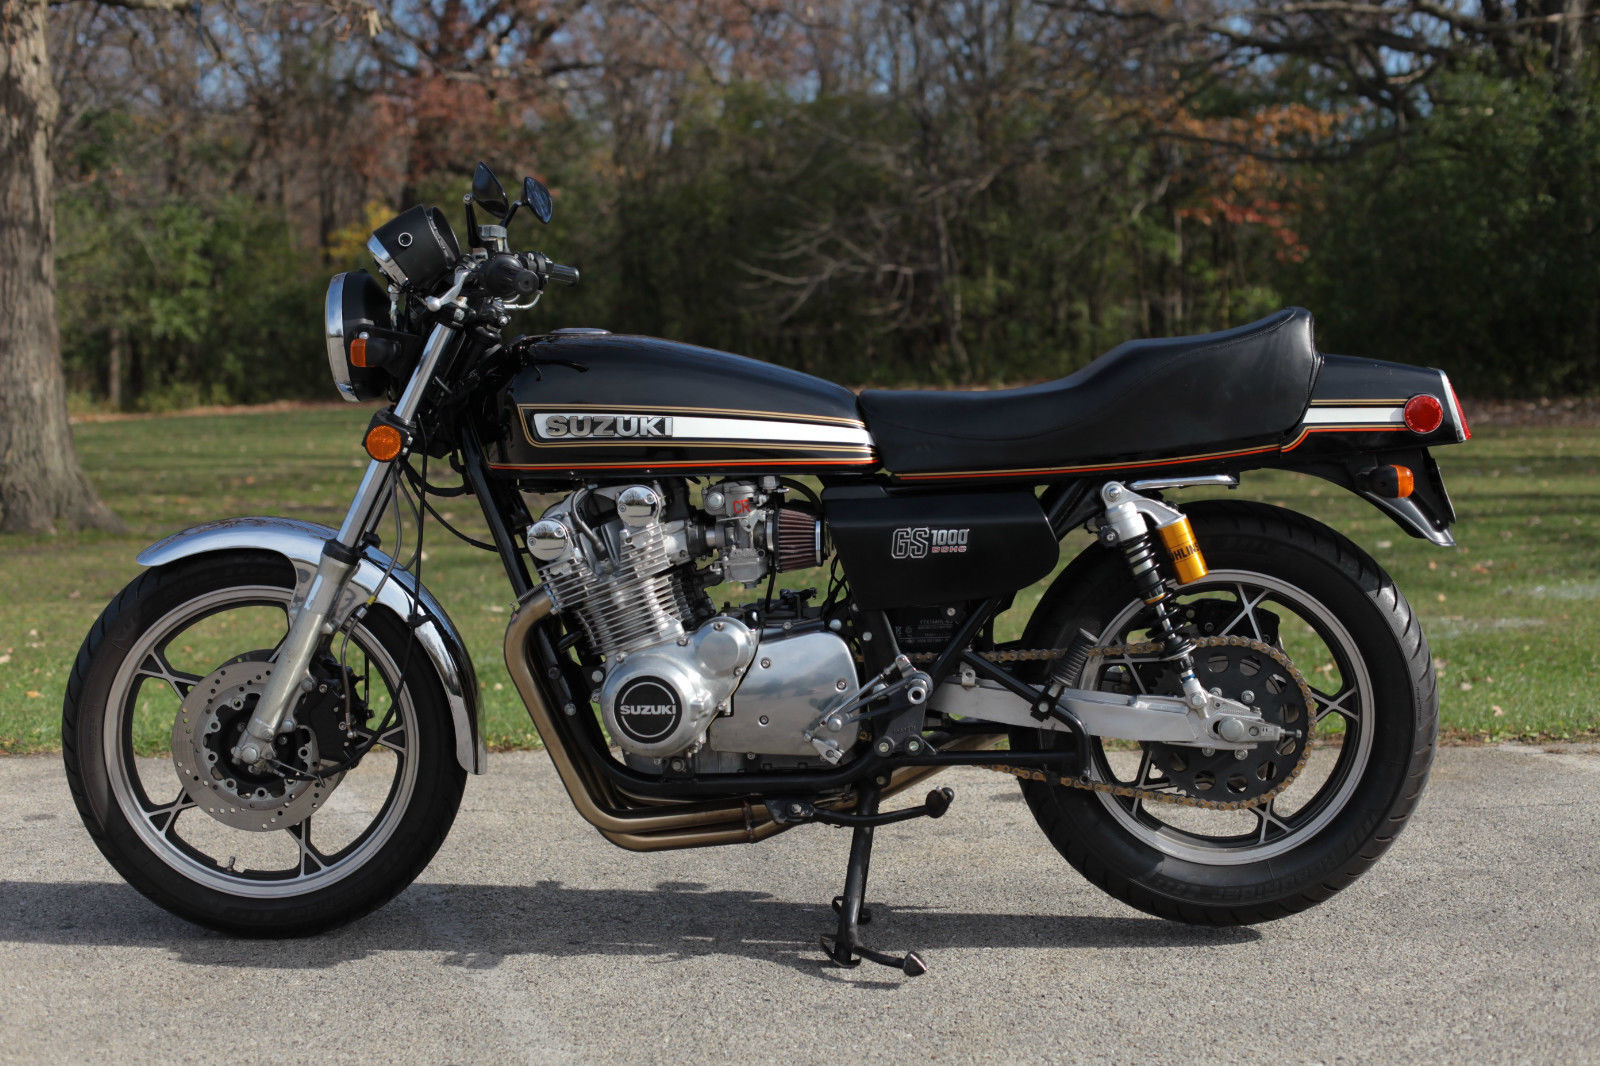 Suzuki GS 1000 E Photos, Informations, Articles - Bikes